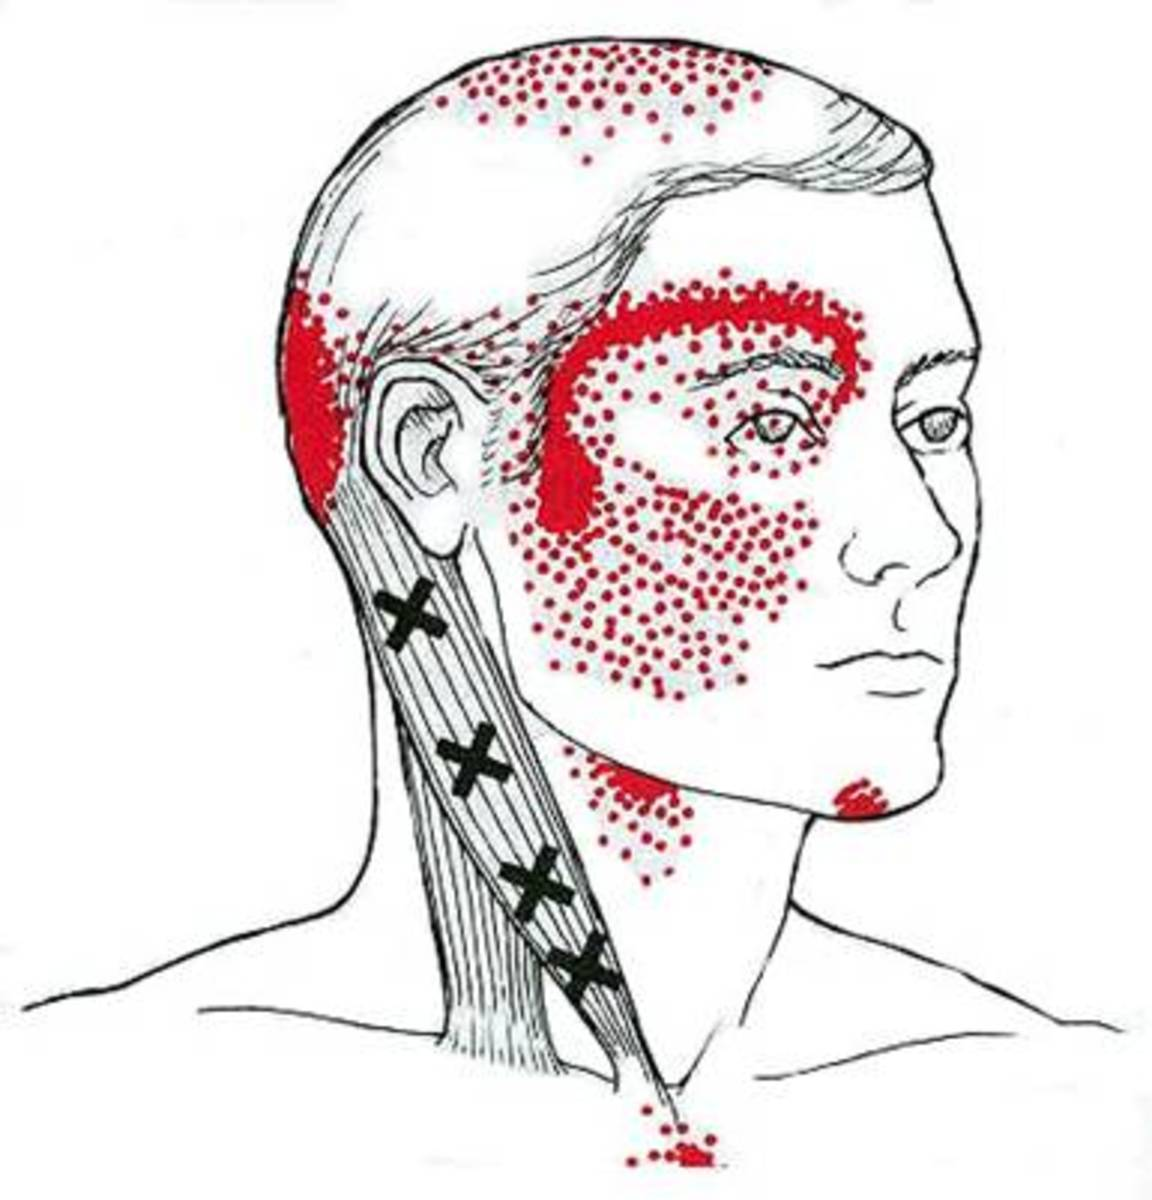 The Xs mark potential trigger points on the sternocleidomastoid muscle that is often the culprit of headaches.